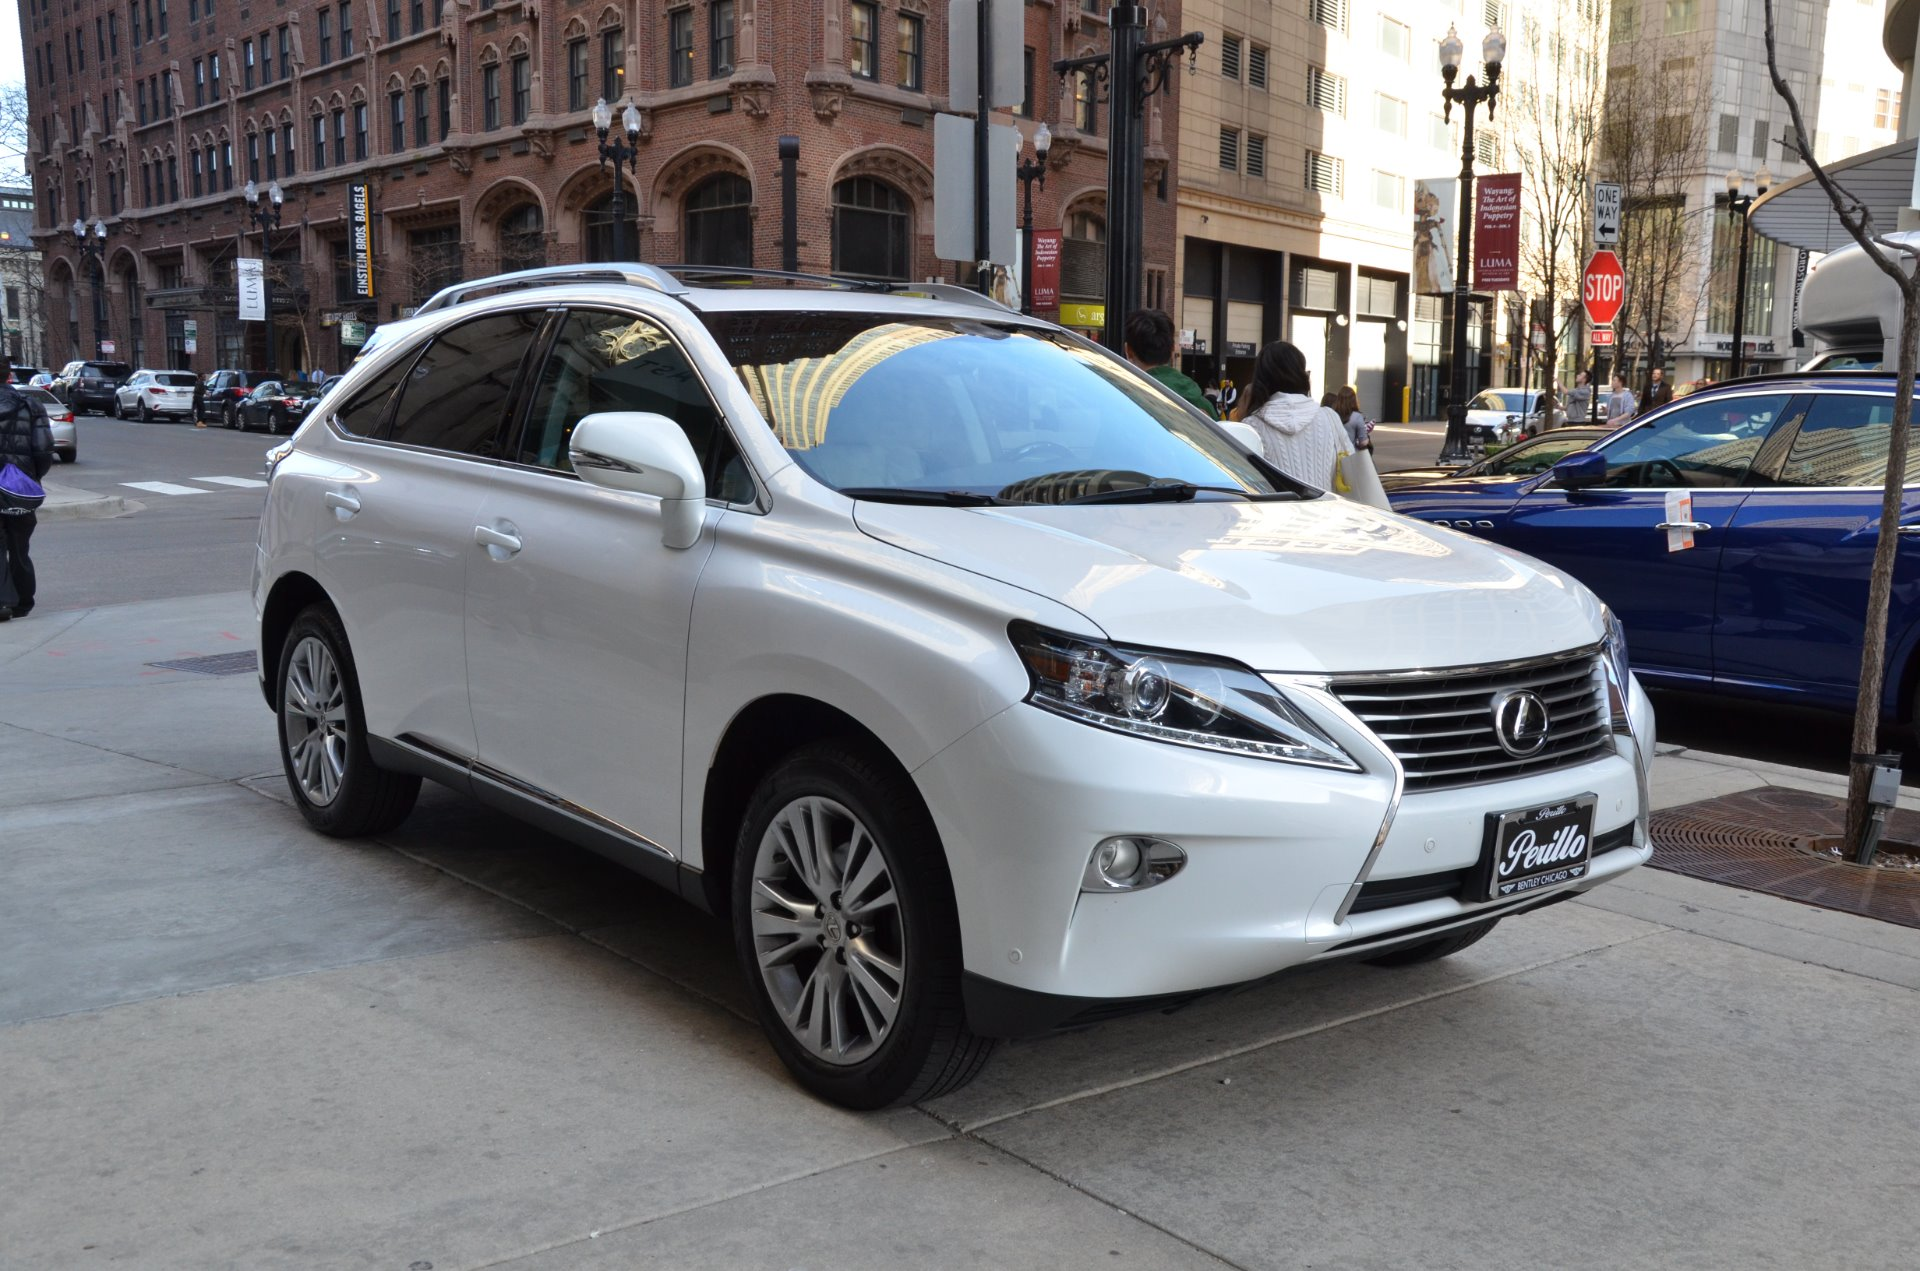 2013 lexus rx 350 stock b834bb for sale near chicago il il lexus dealer. Black Bedroom Furniture Sets. Home Design Ideas